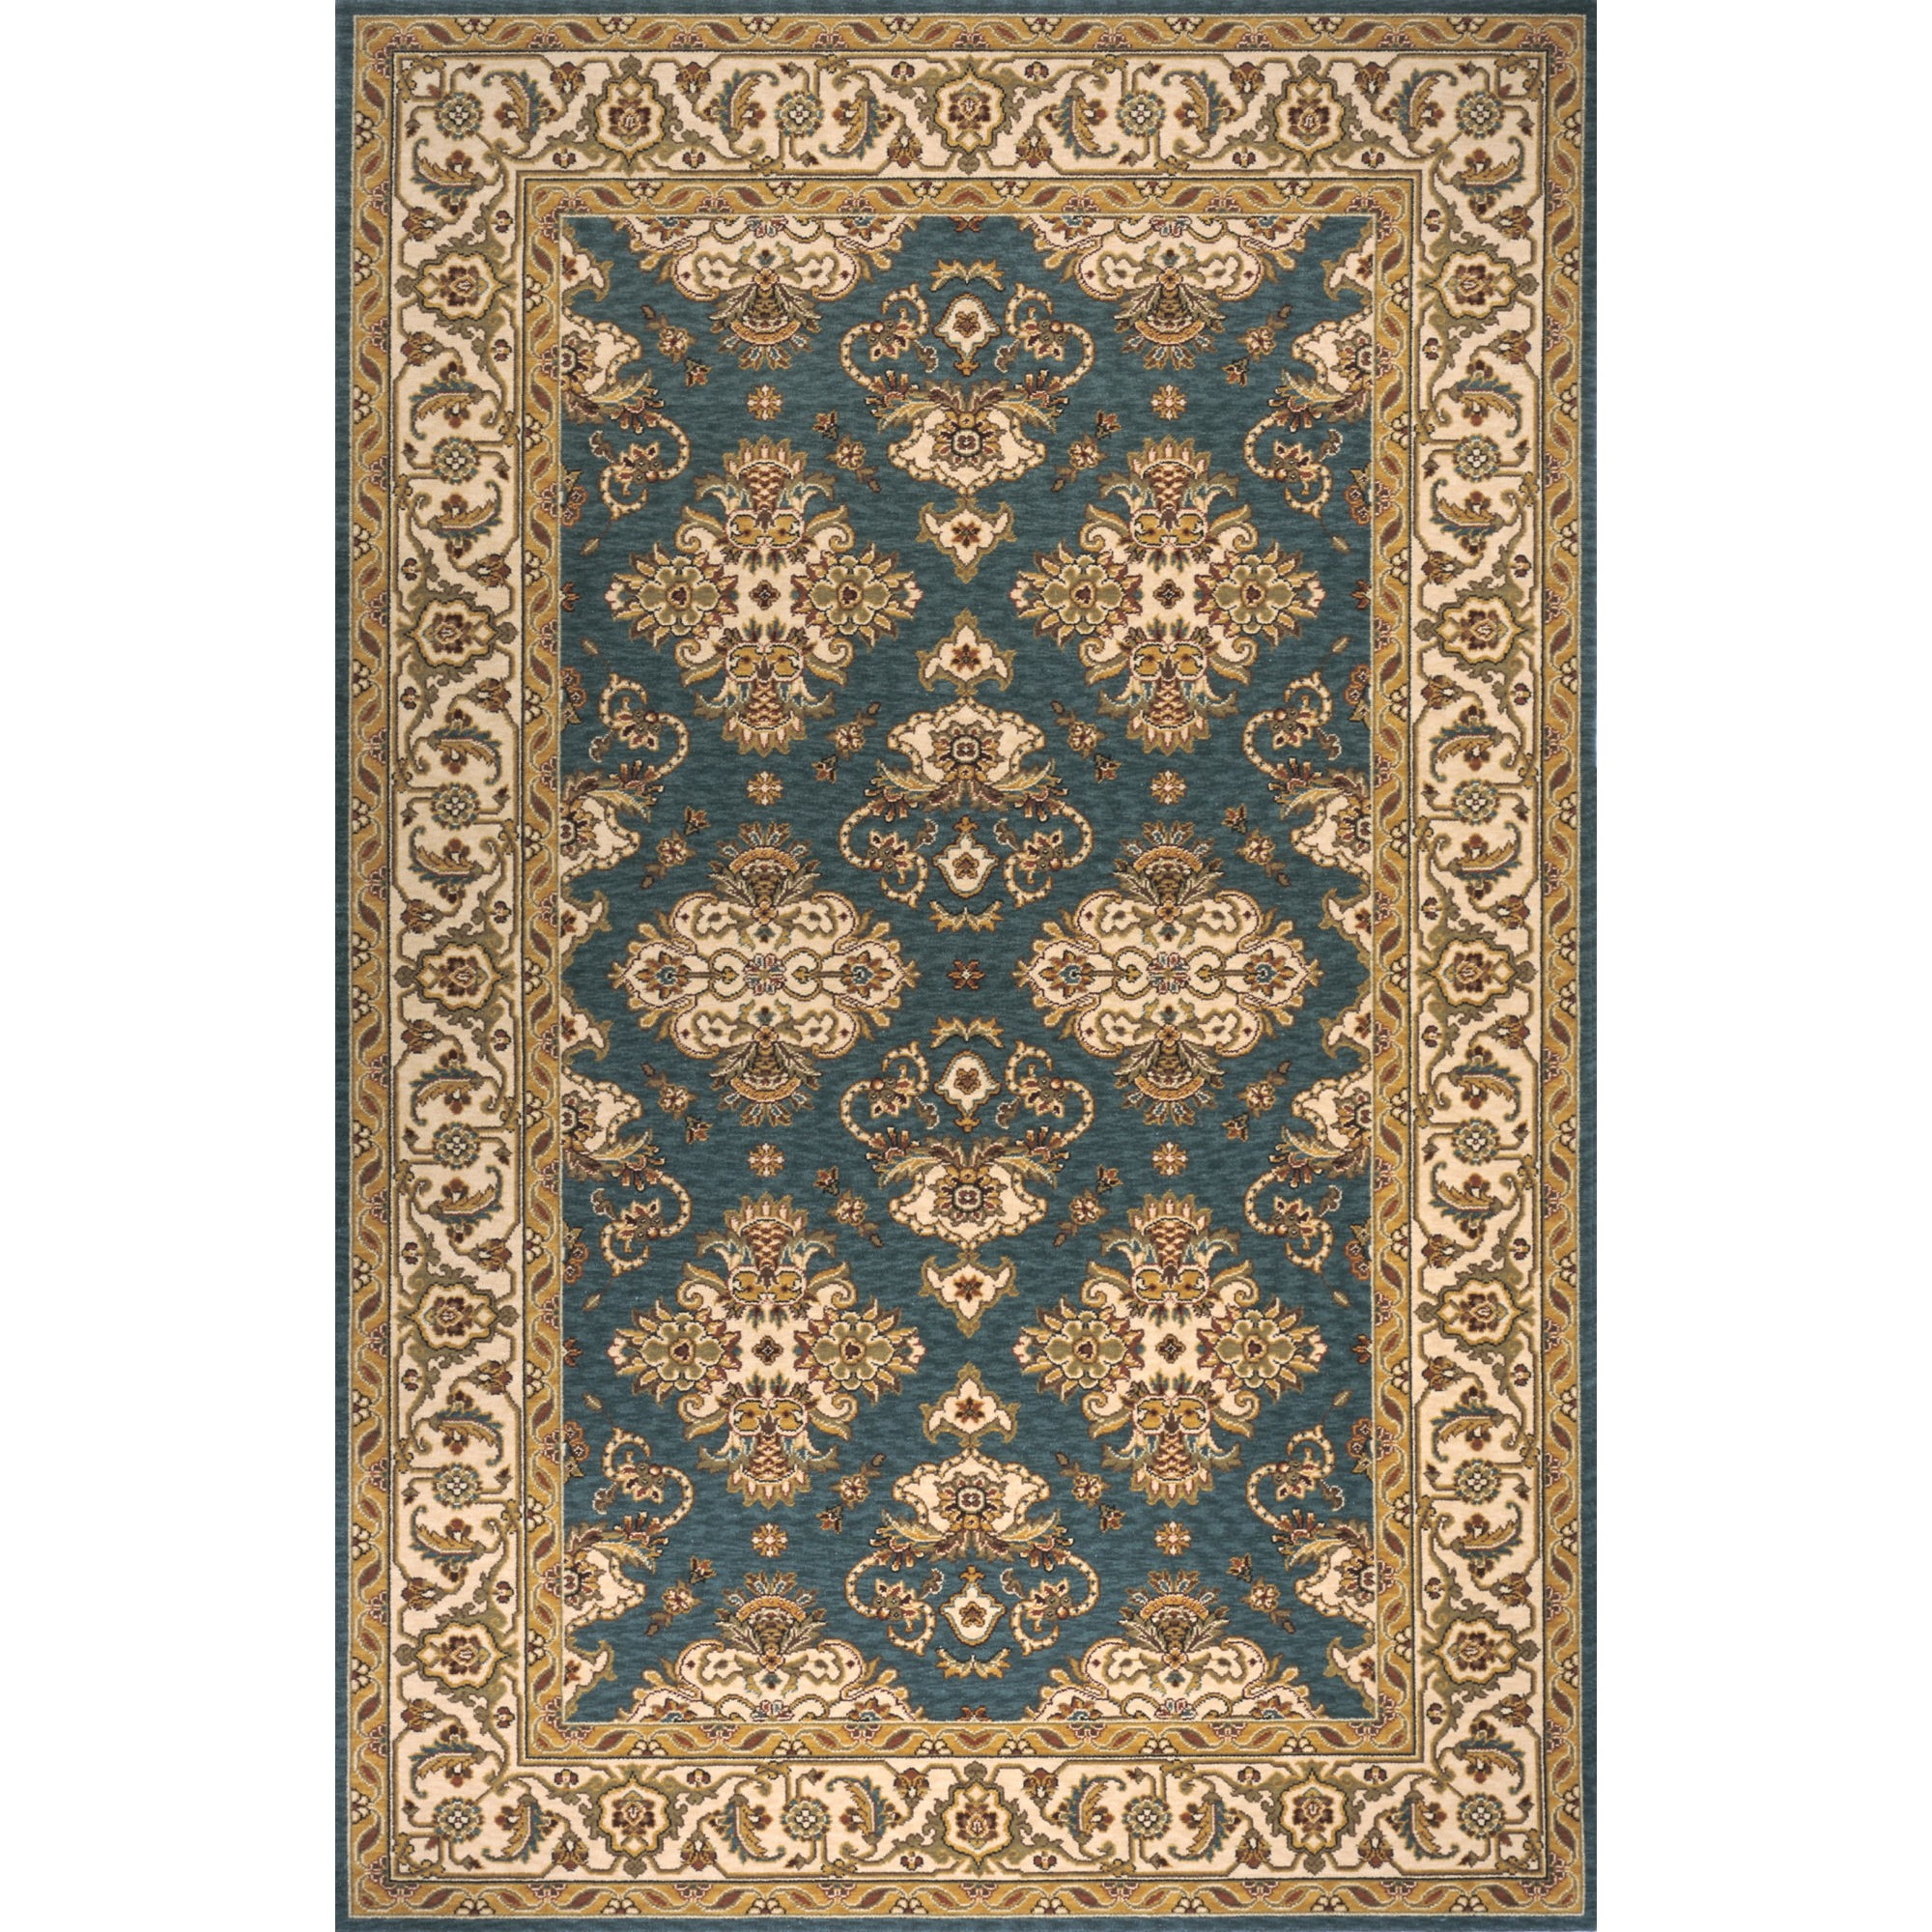 wonderful Persian Garden Teal Blue Rug by momeni rugs for floor decor ideas